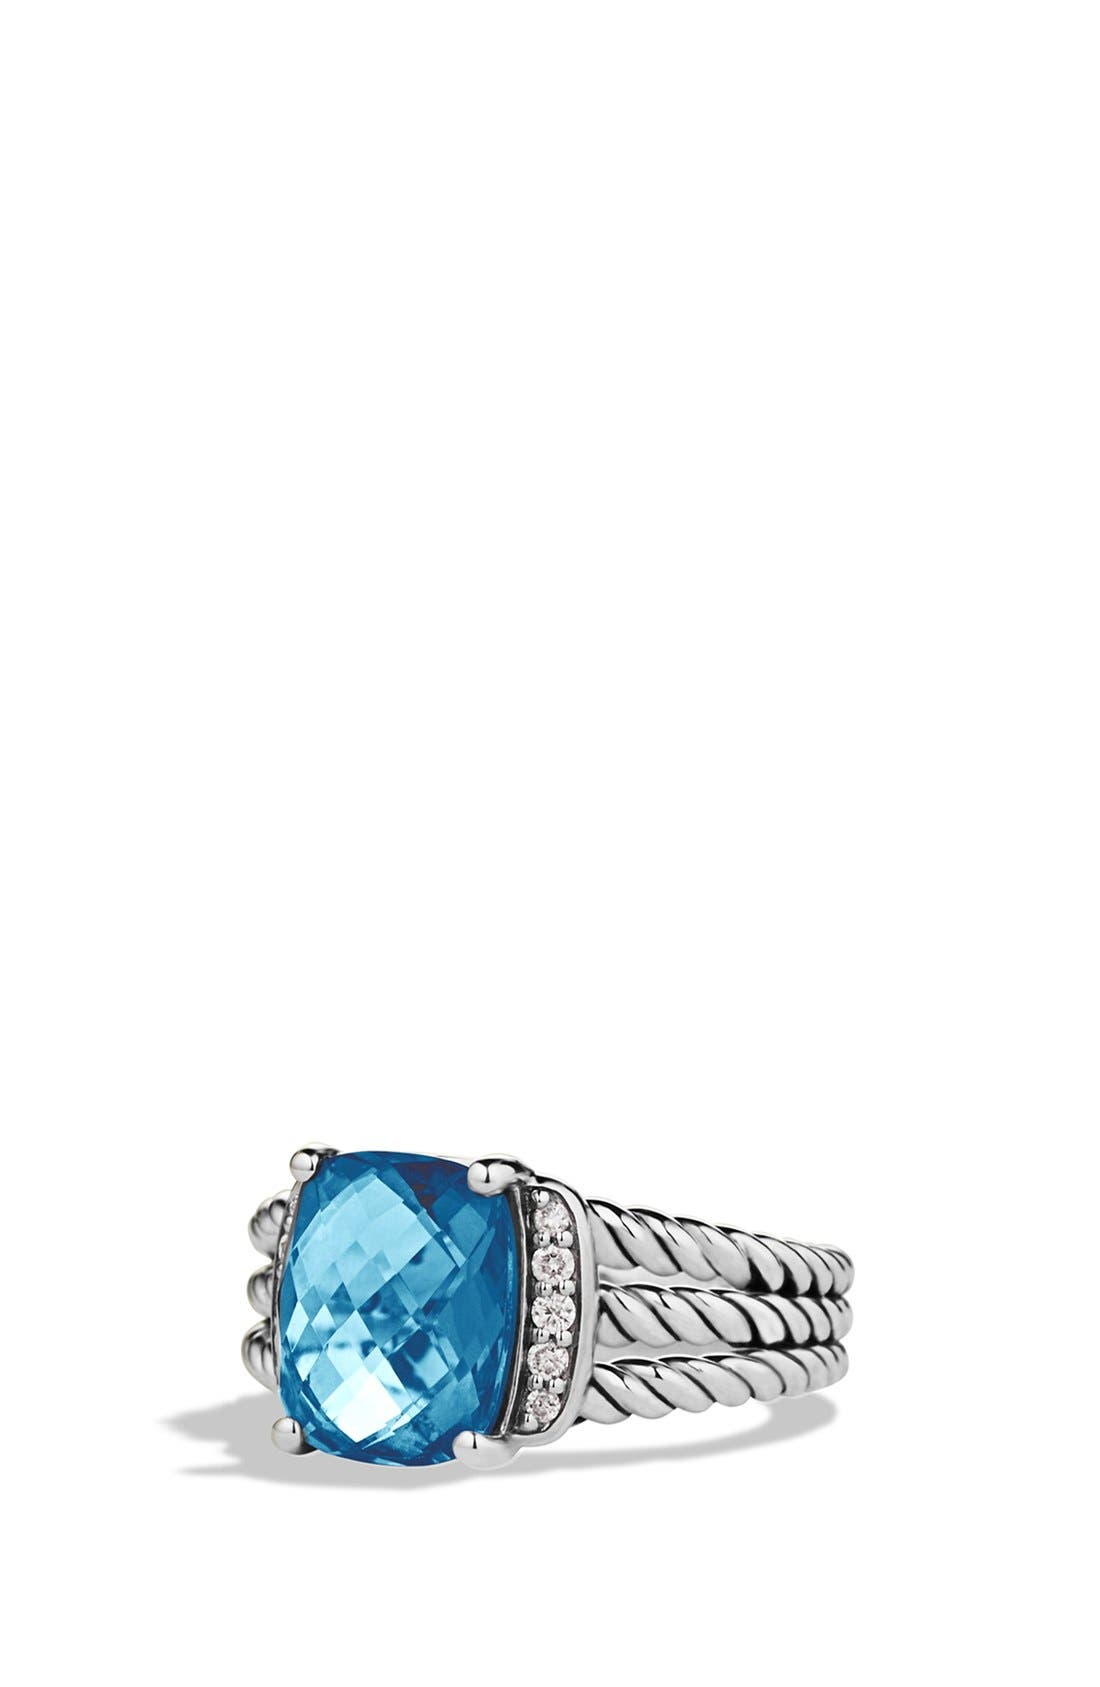 Main Image - David Yurman 'Wheaton' Petite Ring with Semiprecious Stone & Diamonds